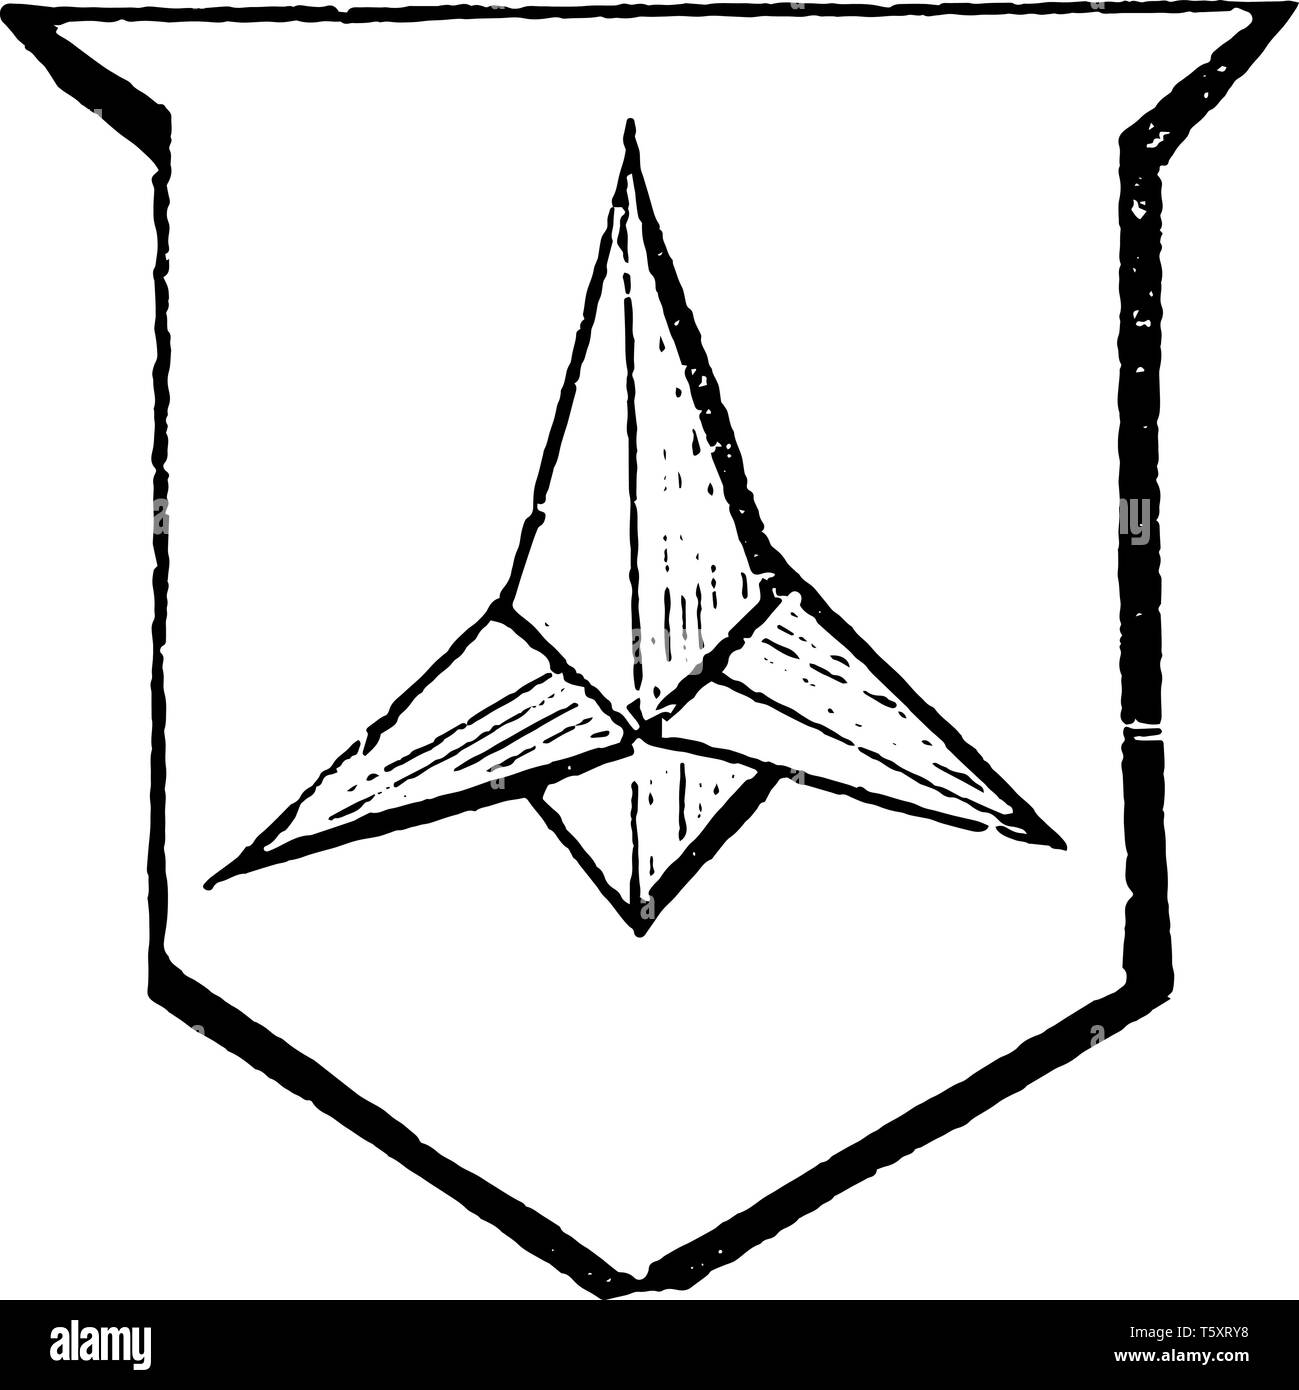 Caltrop is an iron instrument made to annoy an enemy's cavalry, vintage line drawing or engraving illustration. - Stock Vector